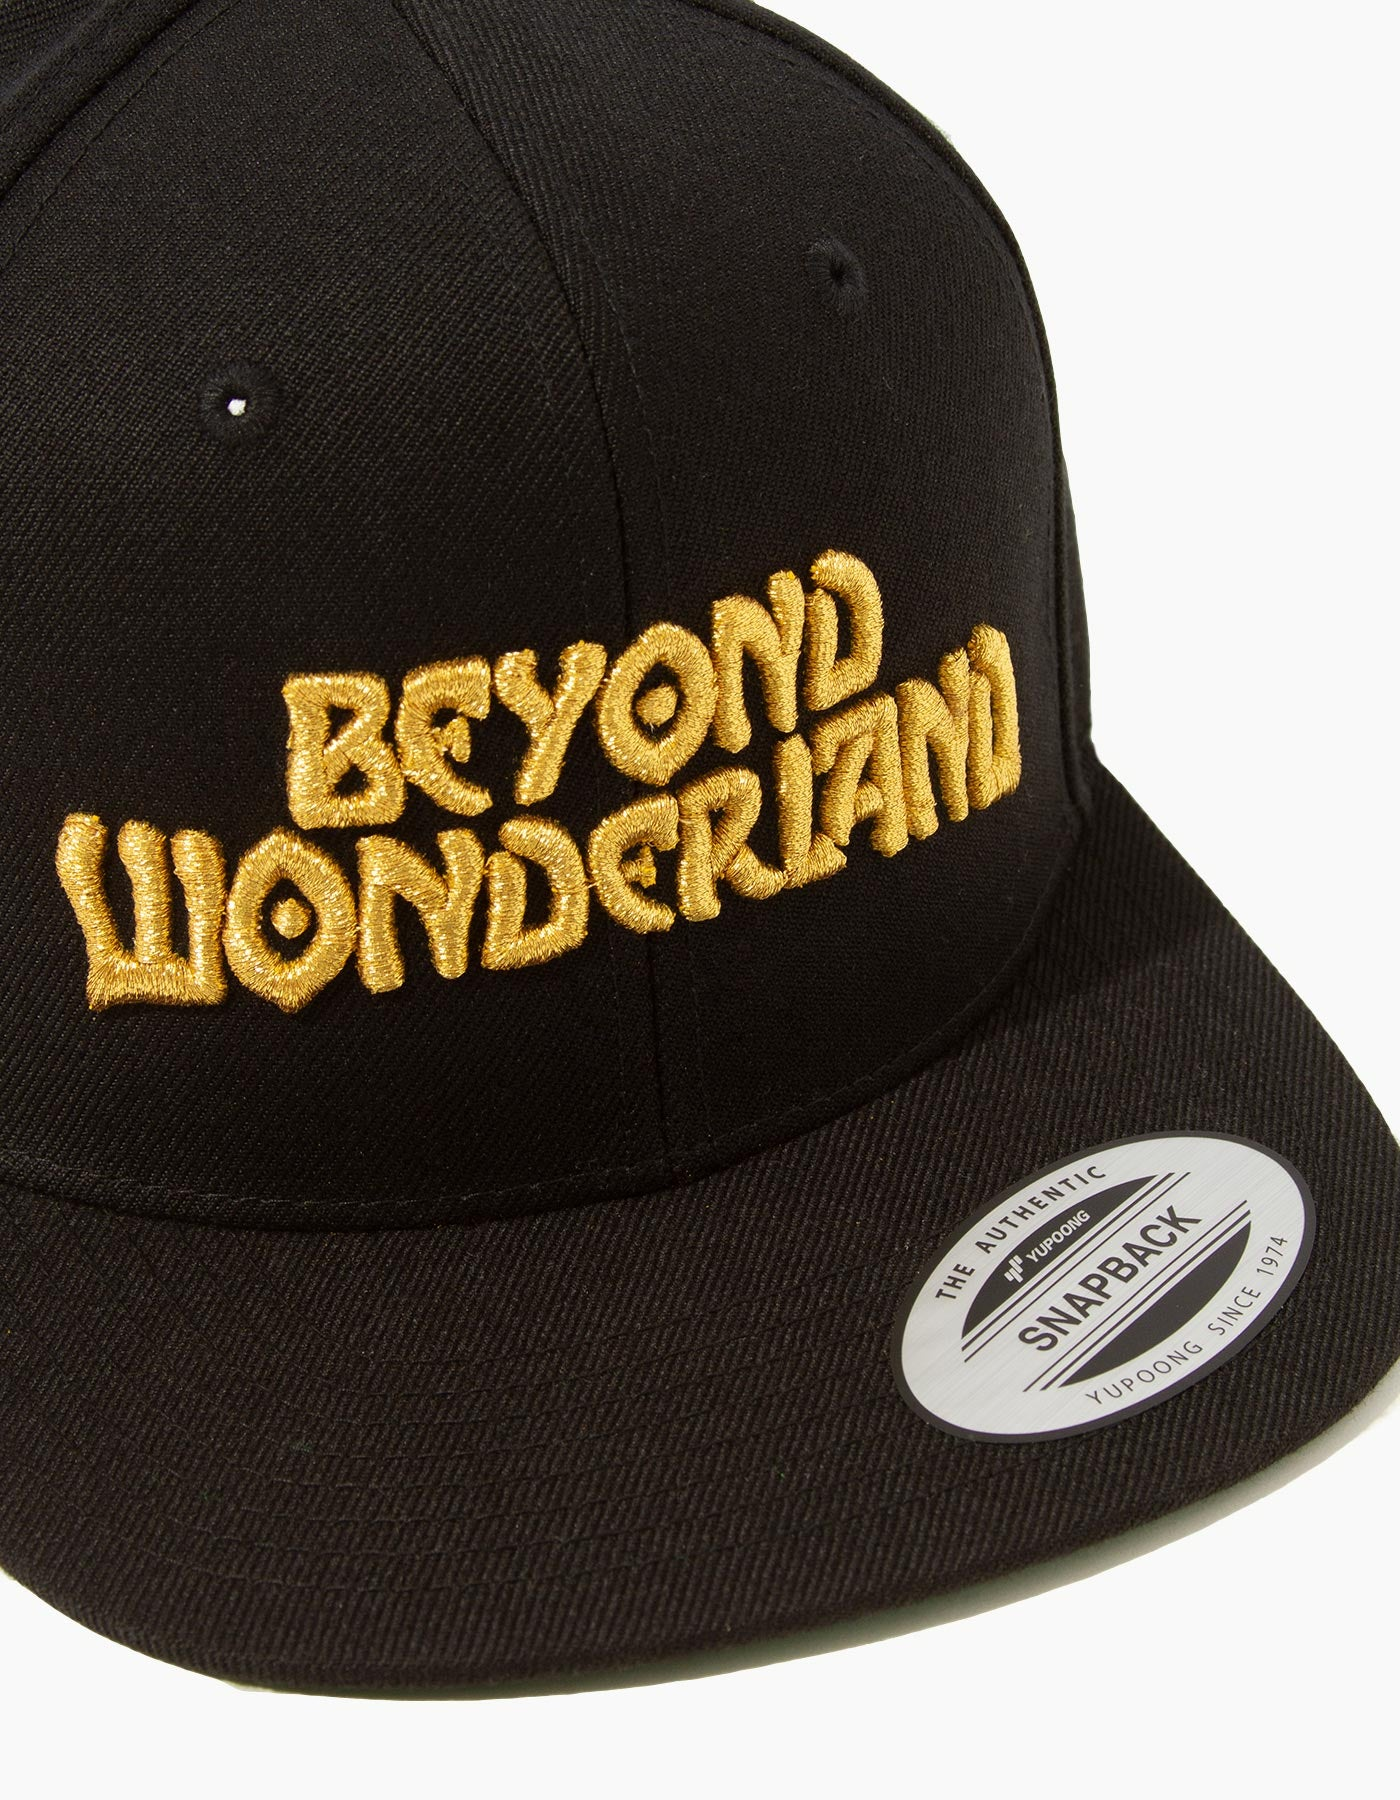 Beyond Wonderland Gold Wonderland Hat